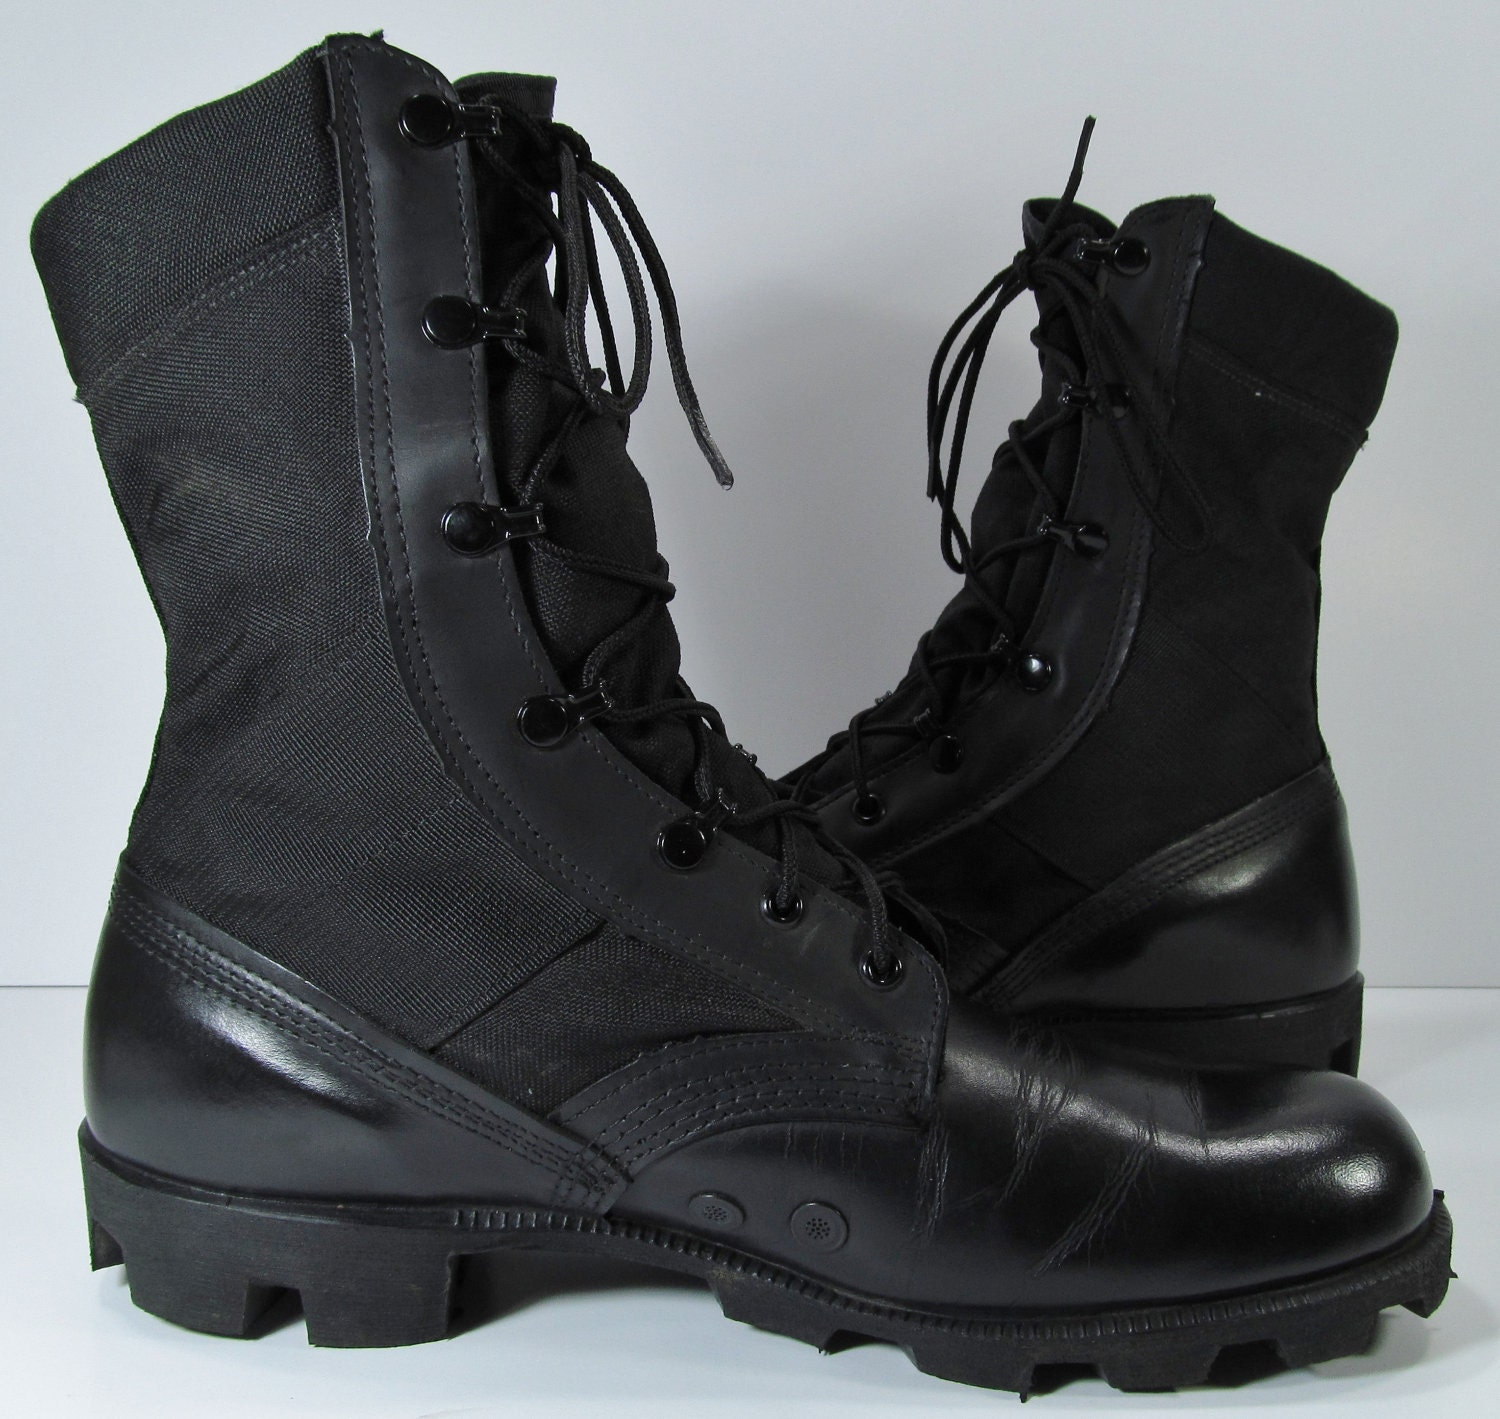 vintage combat boots mens 10 D R black military by moivintage